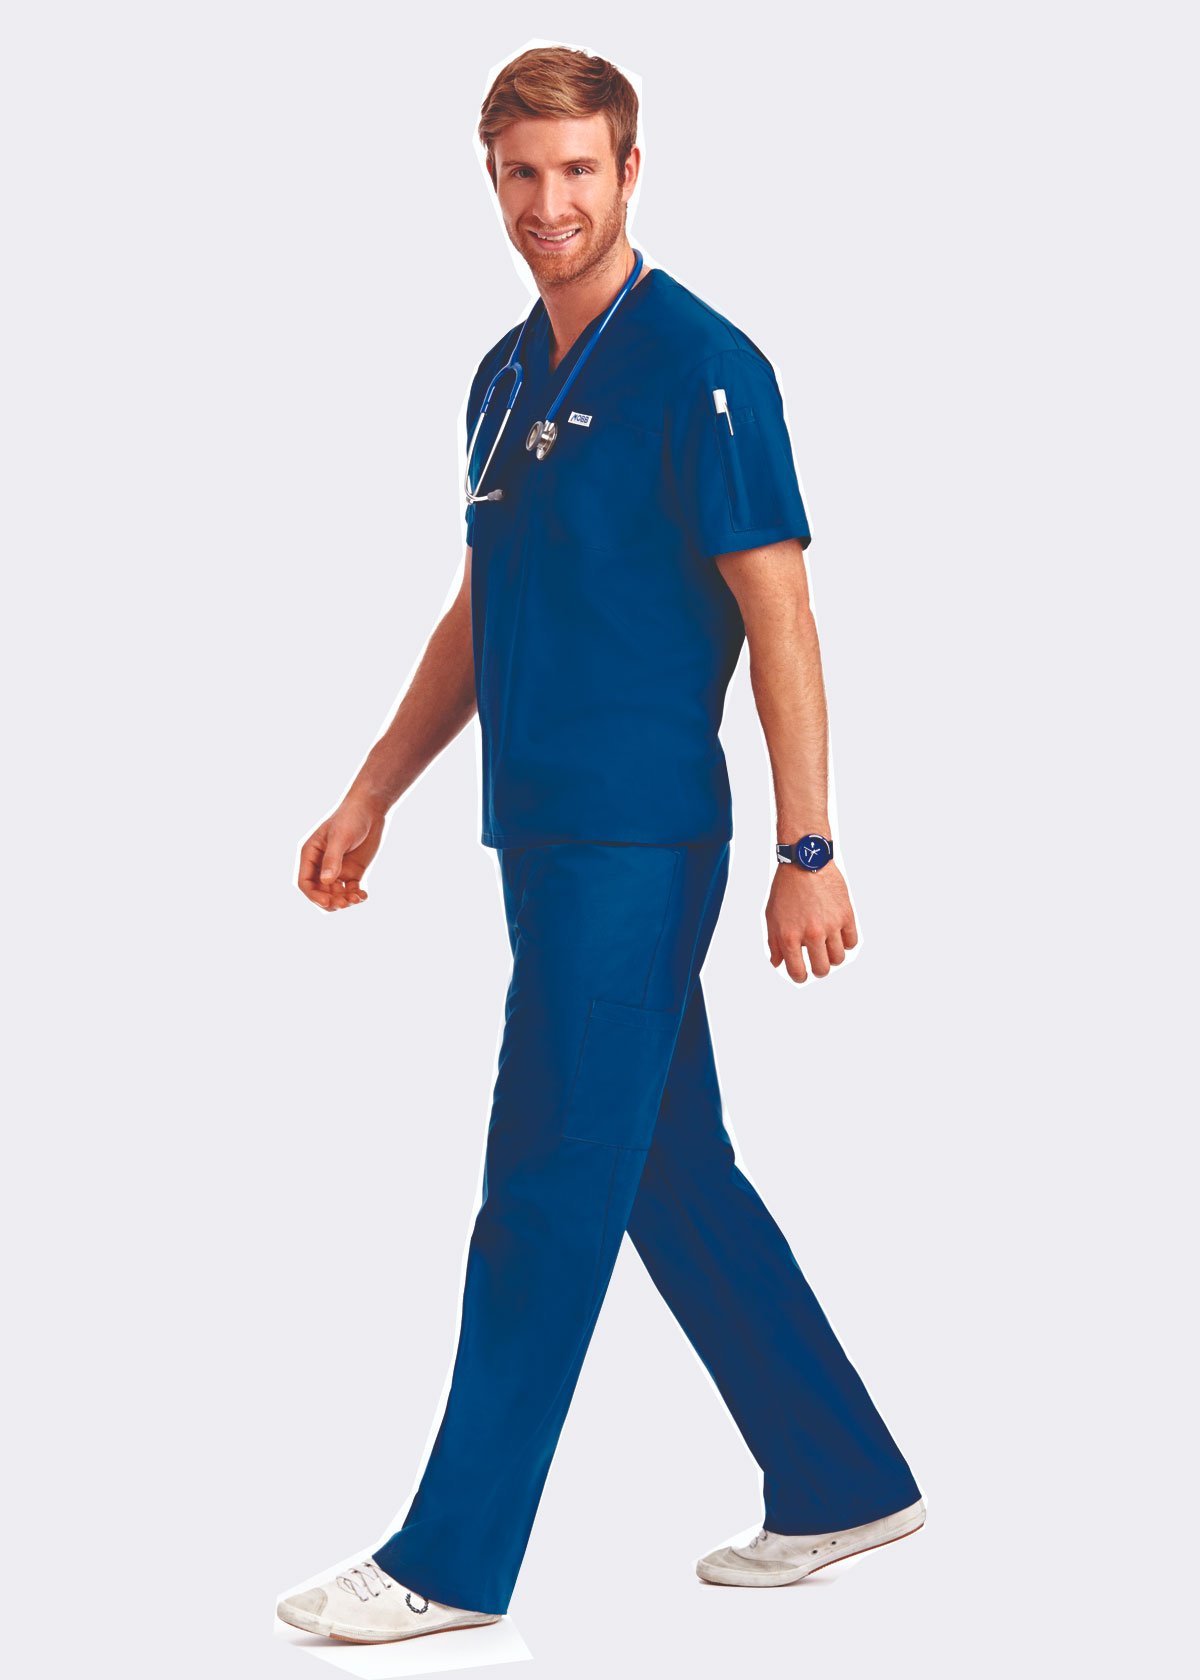 Drawstring Scrub Set Nurse Scrubs Medical Uniforms